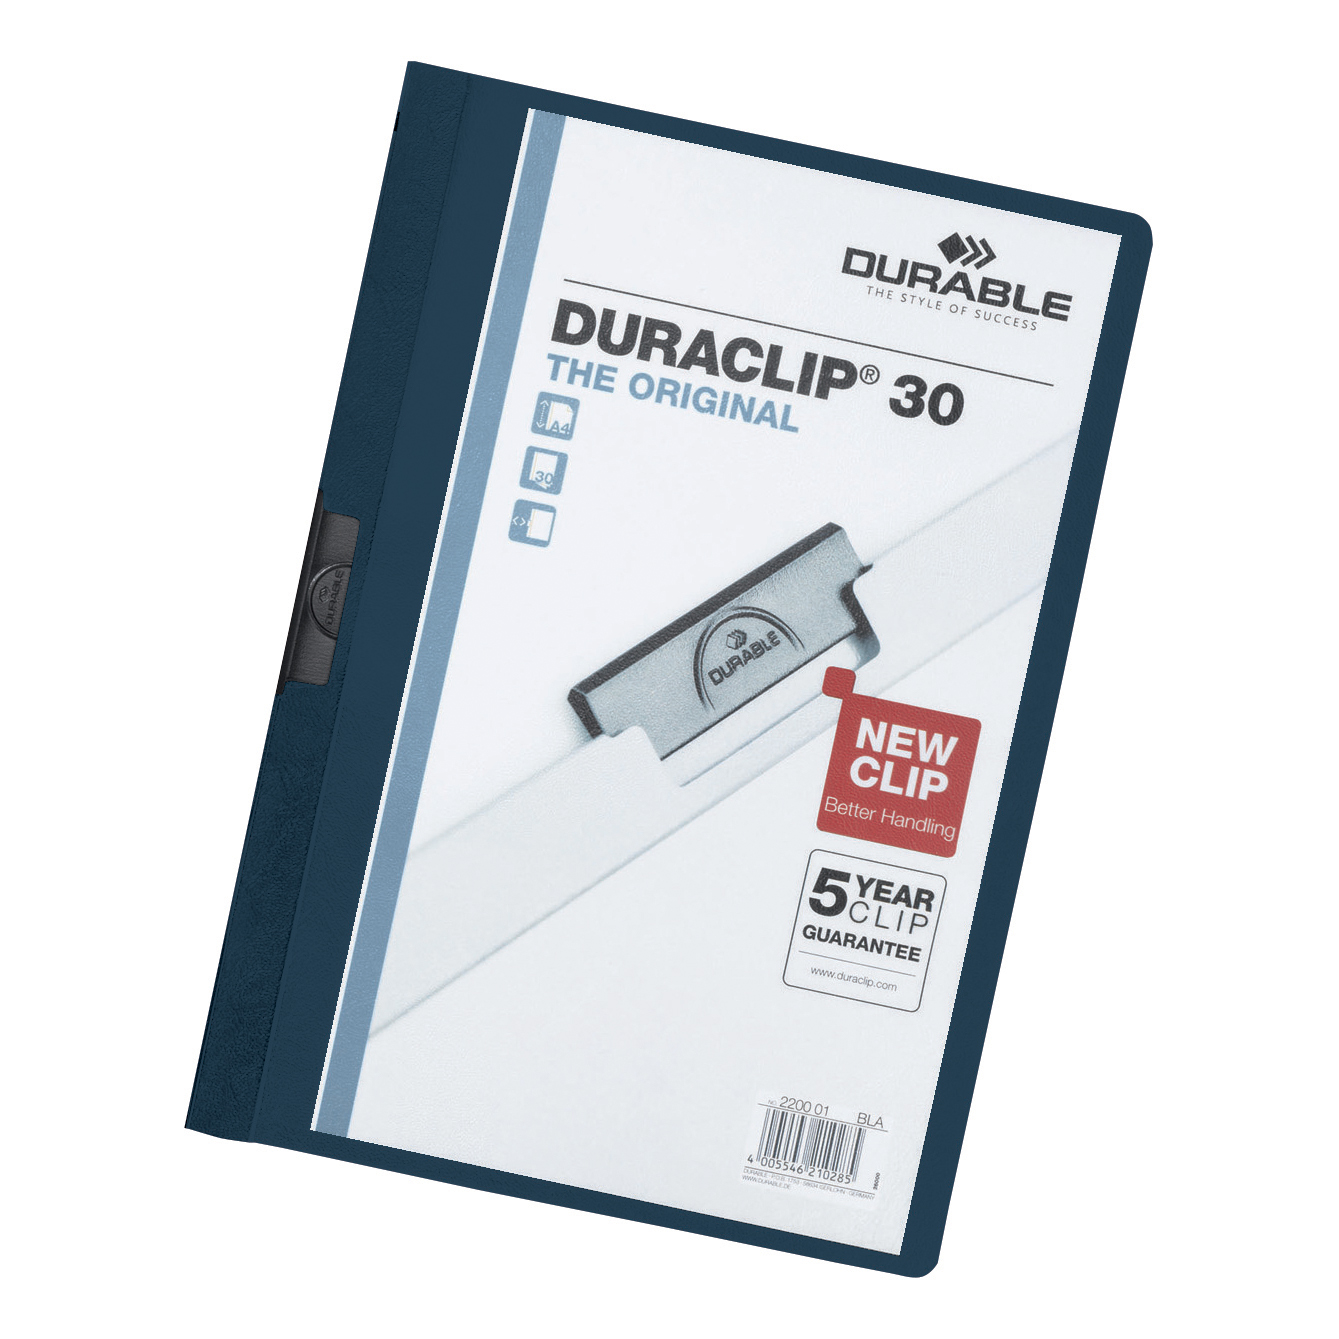 Durable Duraclip Folder PVC Clear Front 3mm Spine for 30 Sheets A4 Midnight Blue Ref 2200/28 [Pack 25]